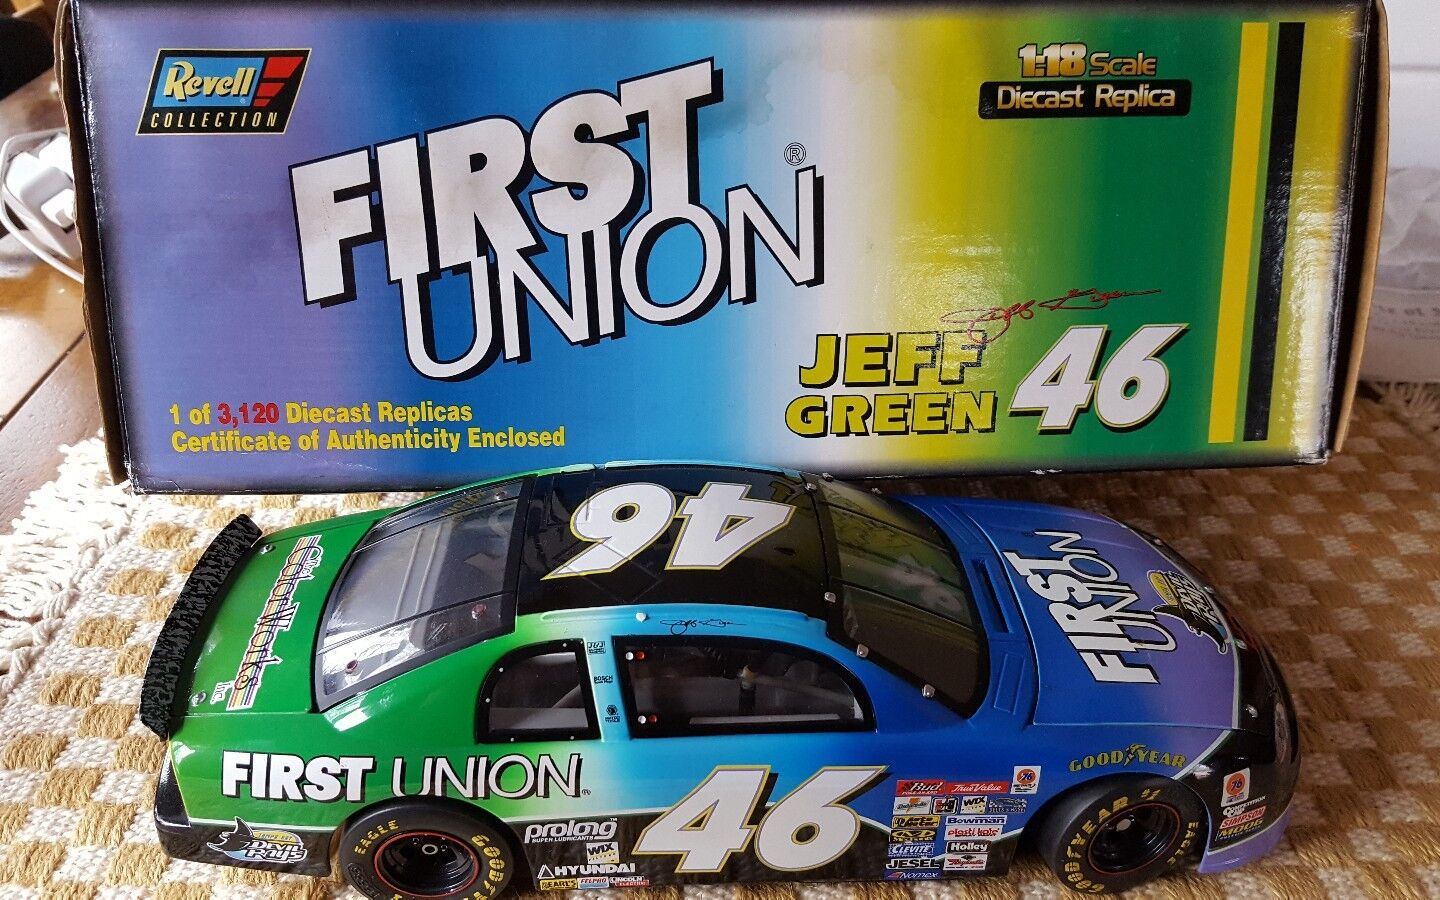 REVELL FIRST UNION JEFF verde  46 [1 18 SCALE] TEAM SABCO